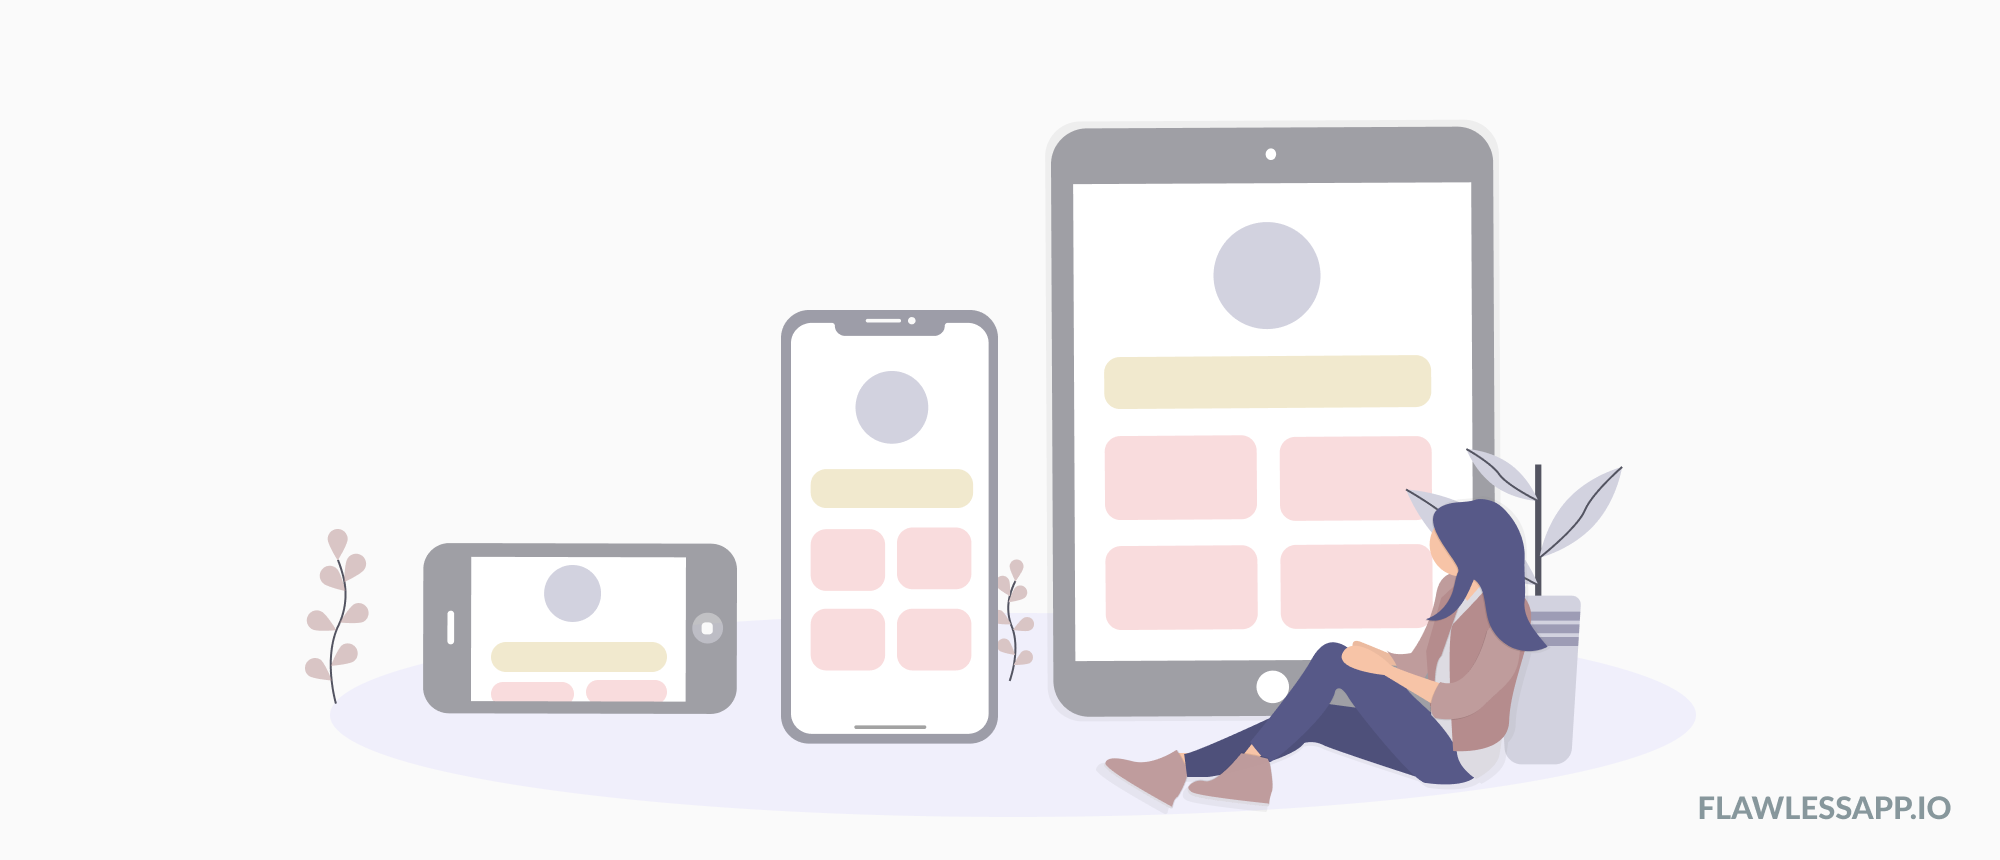 How to make Auto Layout more convenient in iOS - Flawless